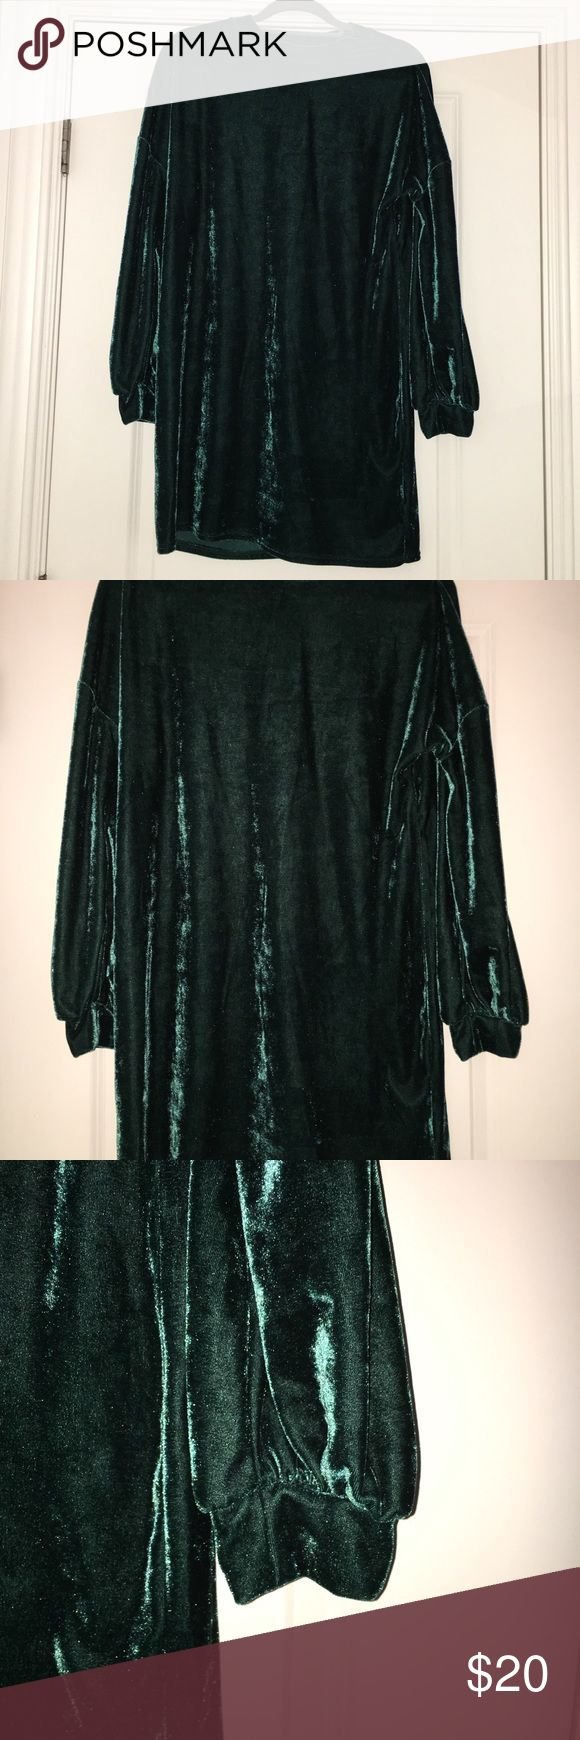 Long Sleeve Velvet Dress Gorgeous and trendy long sleeve velvet dress in an emerald green. Great to wear alone or later with tights or leggings. Only worn a couple times so still in great condition! Primark Dresses Long Sleeve